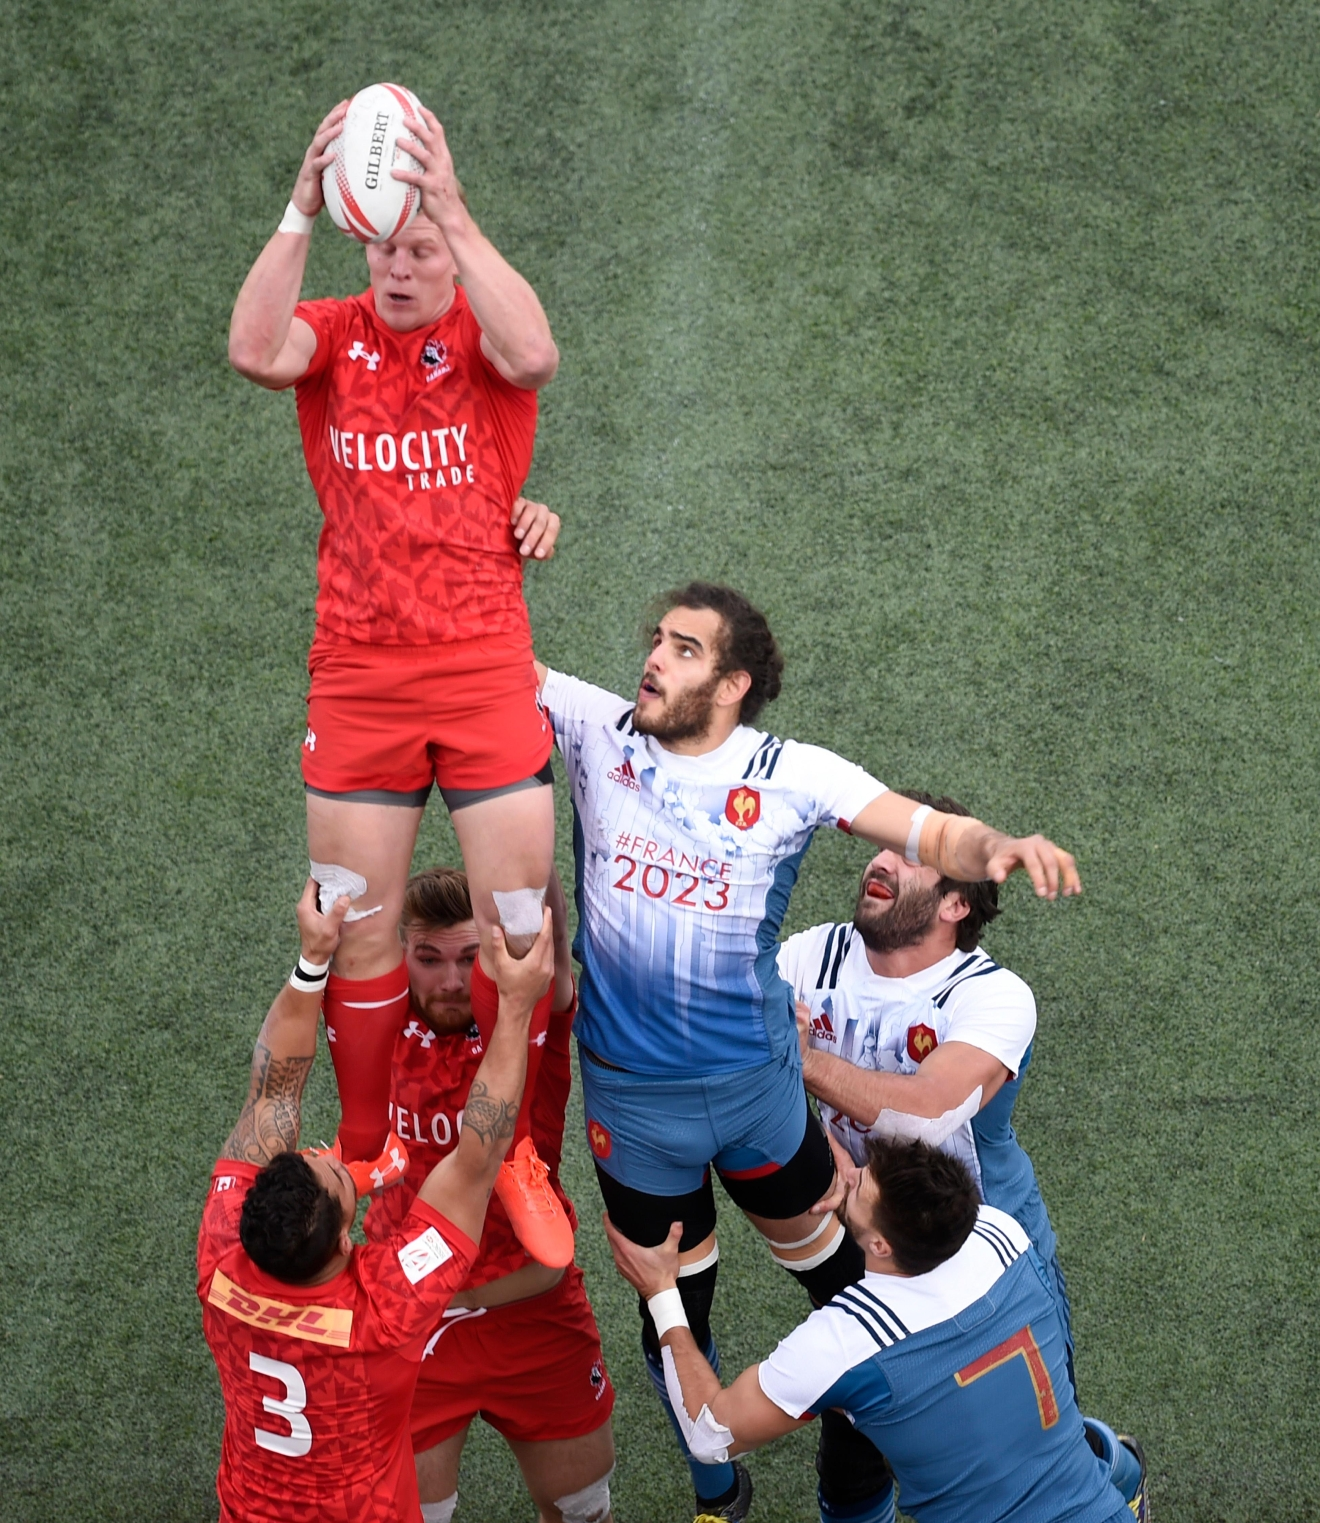 Canada's John Moonlight catches a line out against France during their match at the USA Sevens rugby tournament Saturday, March 4, 2017, at Sam Boyd Stadium. [Sam Morris/Las Vegas News Bureau]